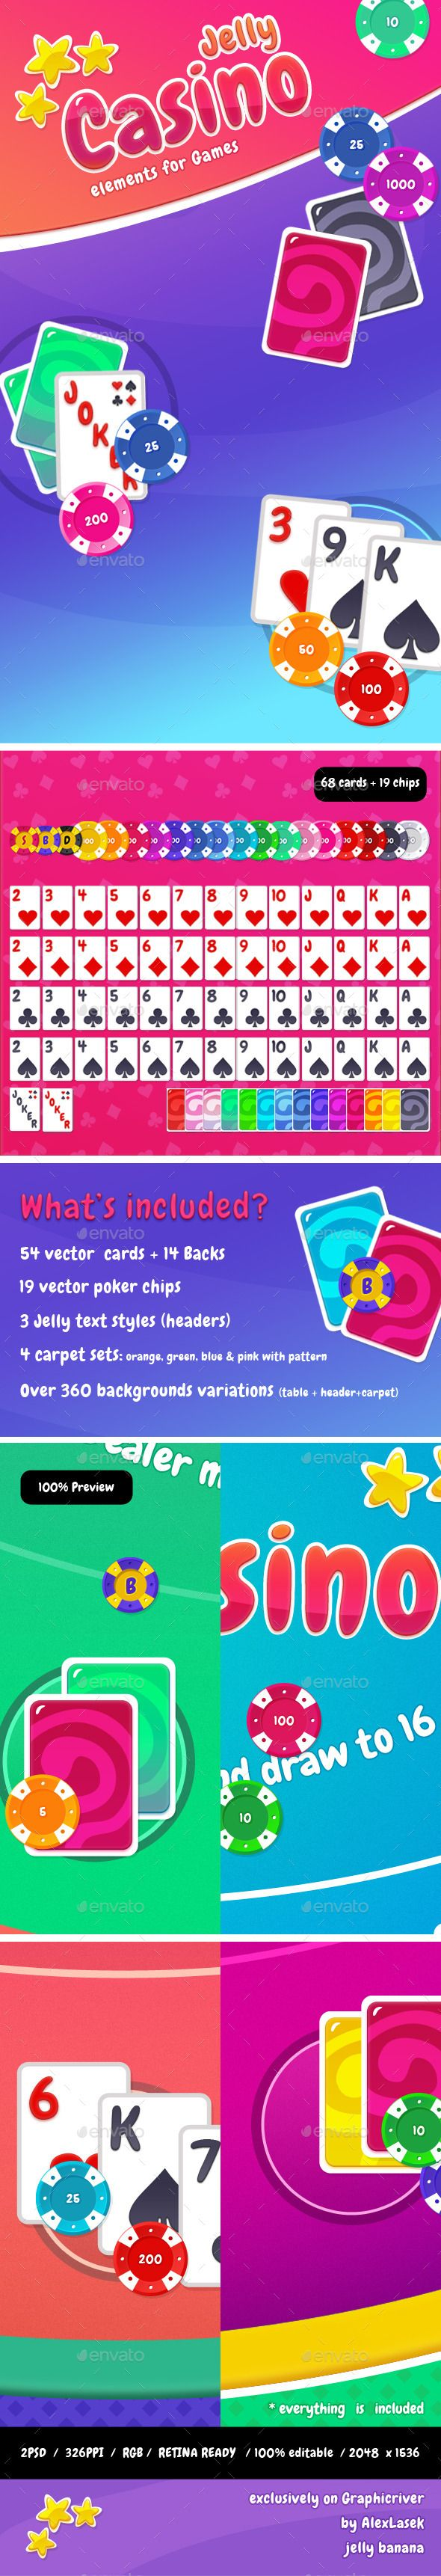 Cartoon Casino Card Games Kit — Photoshop PSD #iphone #chip • Available here → https://graphicriver.net/item/cartoon-casino-card-games-kit-/11051929?ref=pxcr